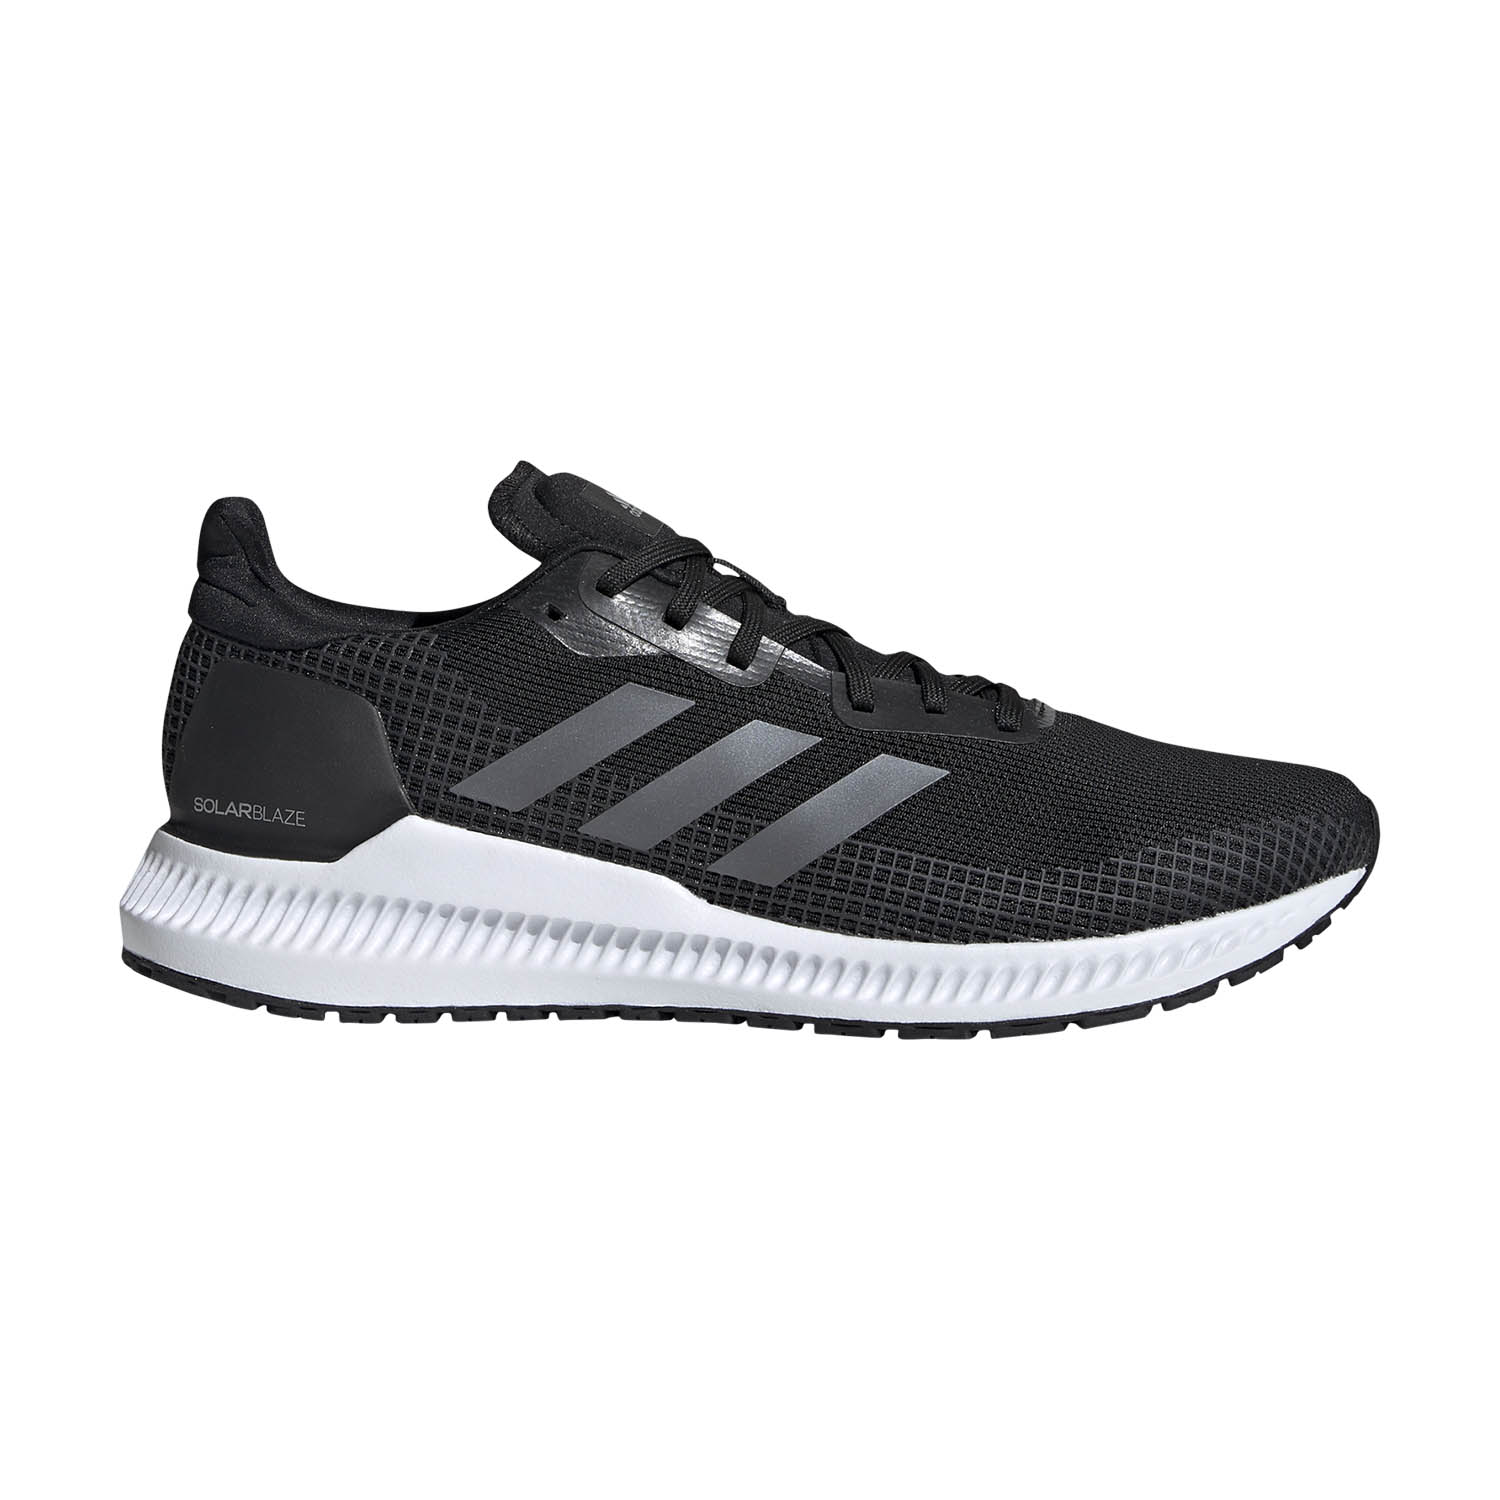 Adidas Solar Blaze - Core Black/Grey Five/Ftwr White